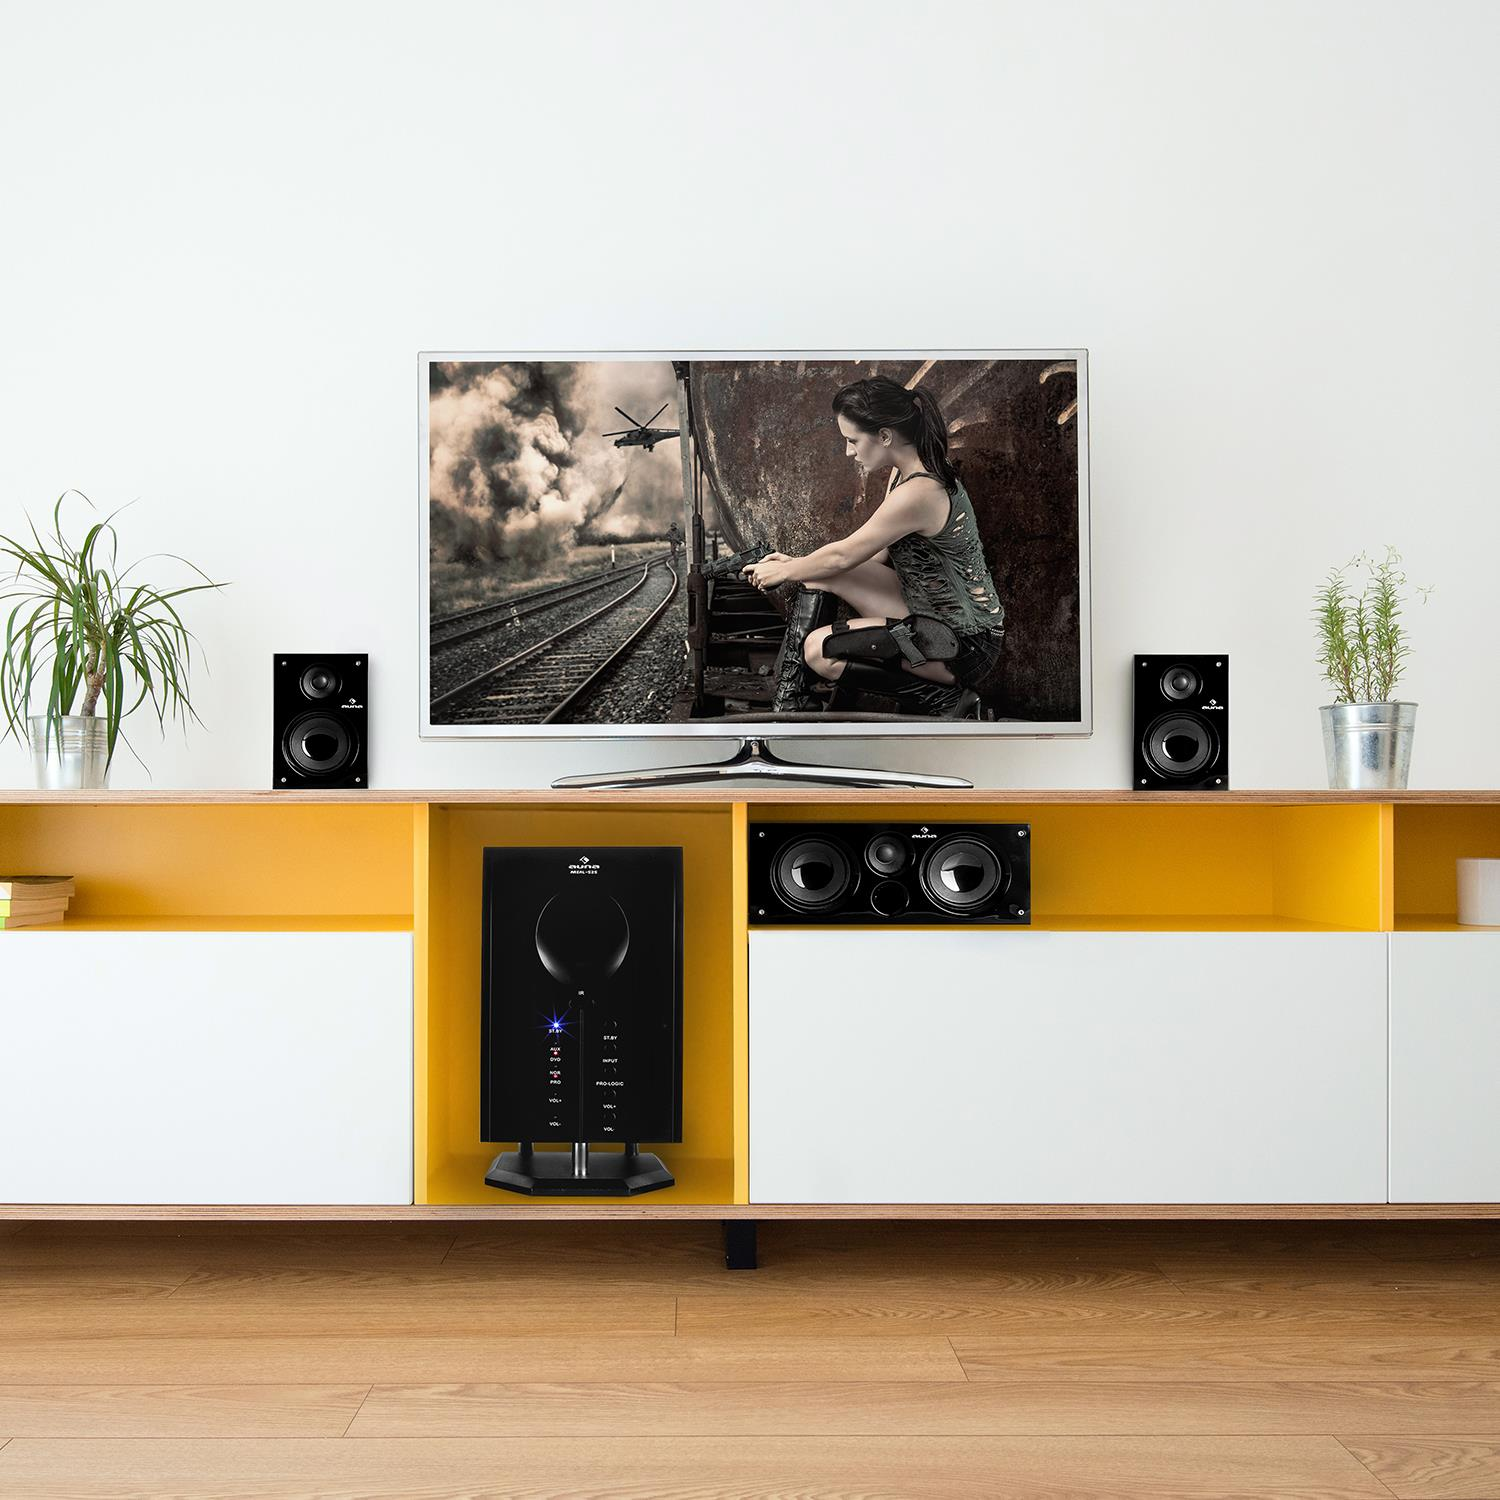 Auna-Areal-525-Bk-5-1-Surround-Sound-Active-Speaker-System-125-W-RMS thumbnail 2